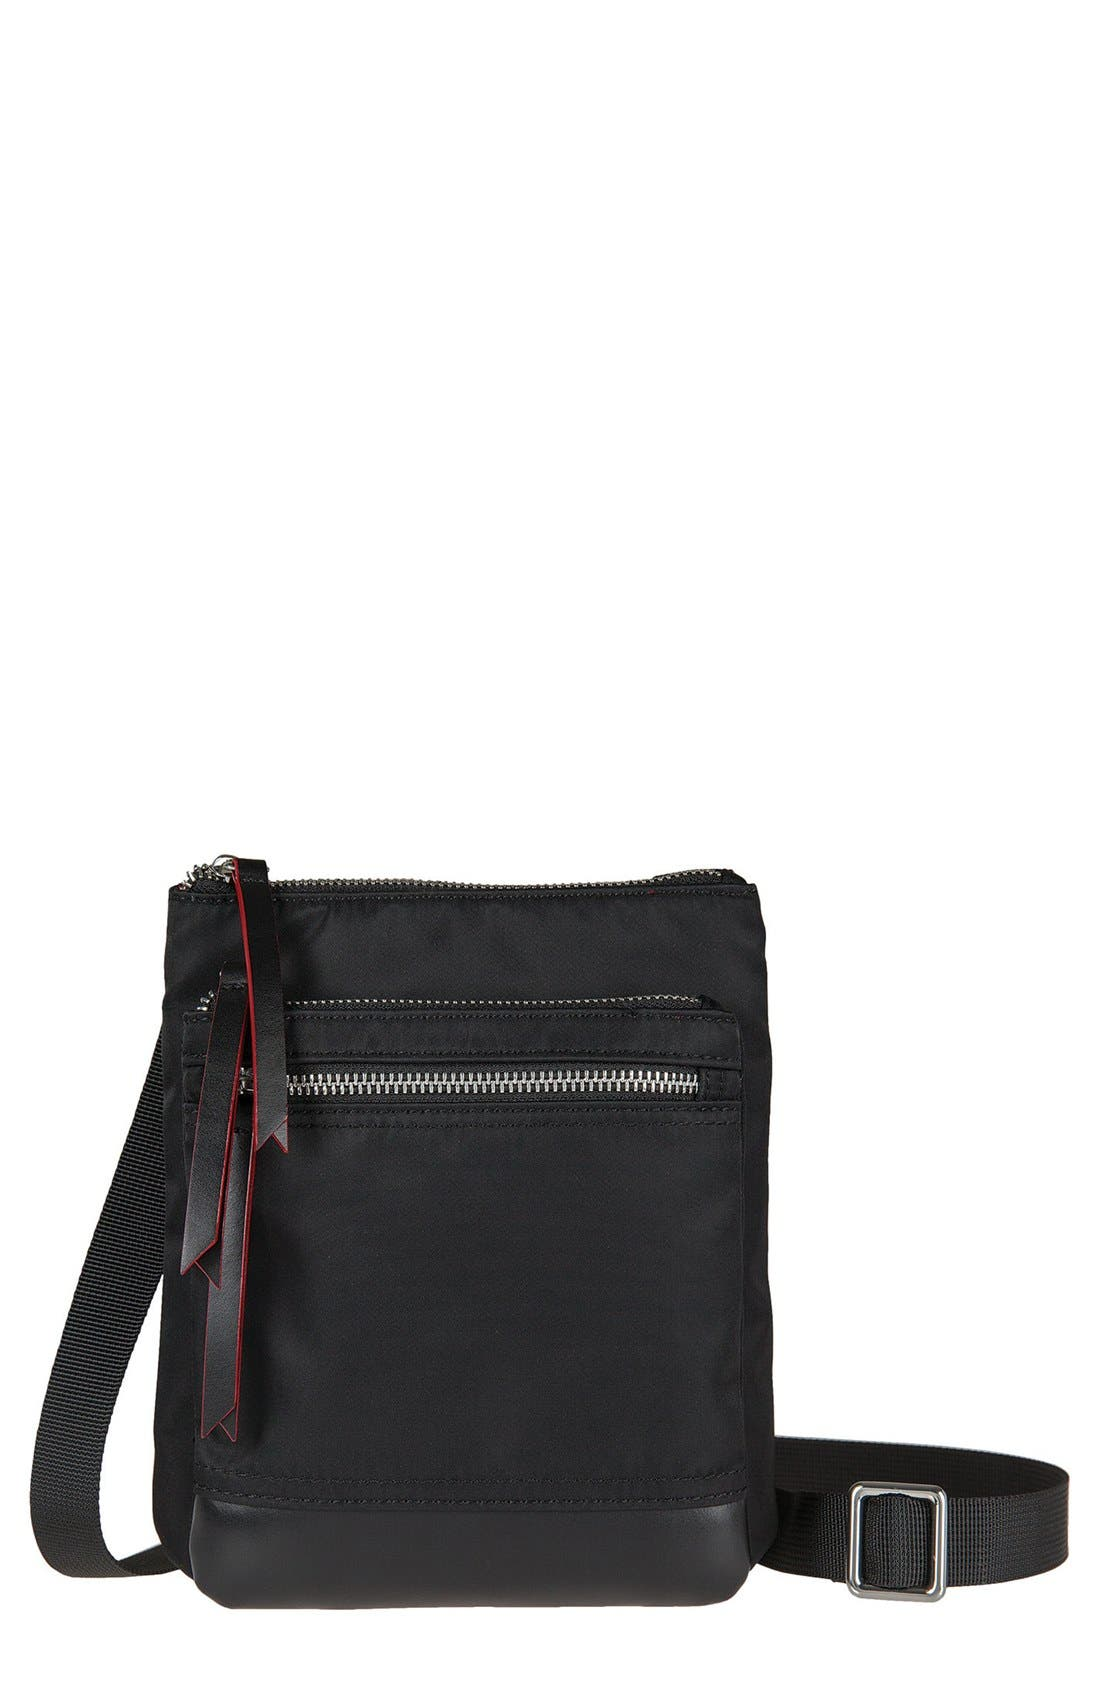 Lodis Zora RFID Nylon & Leather Crossbody Bag